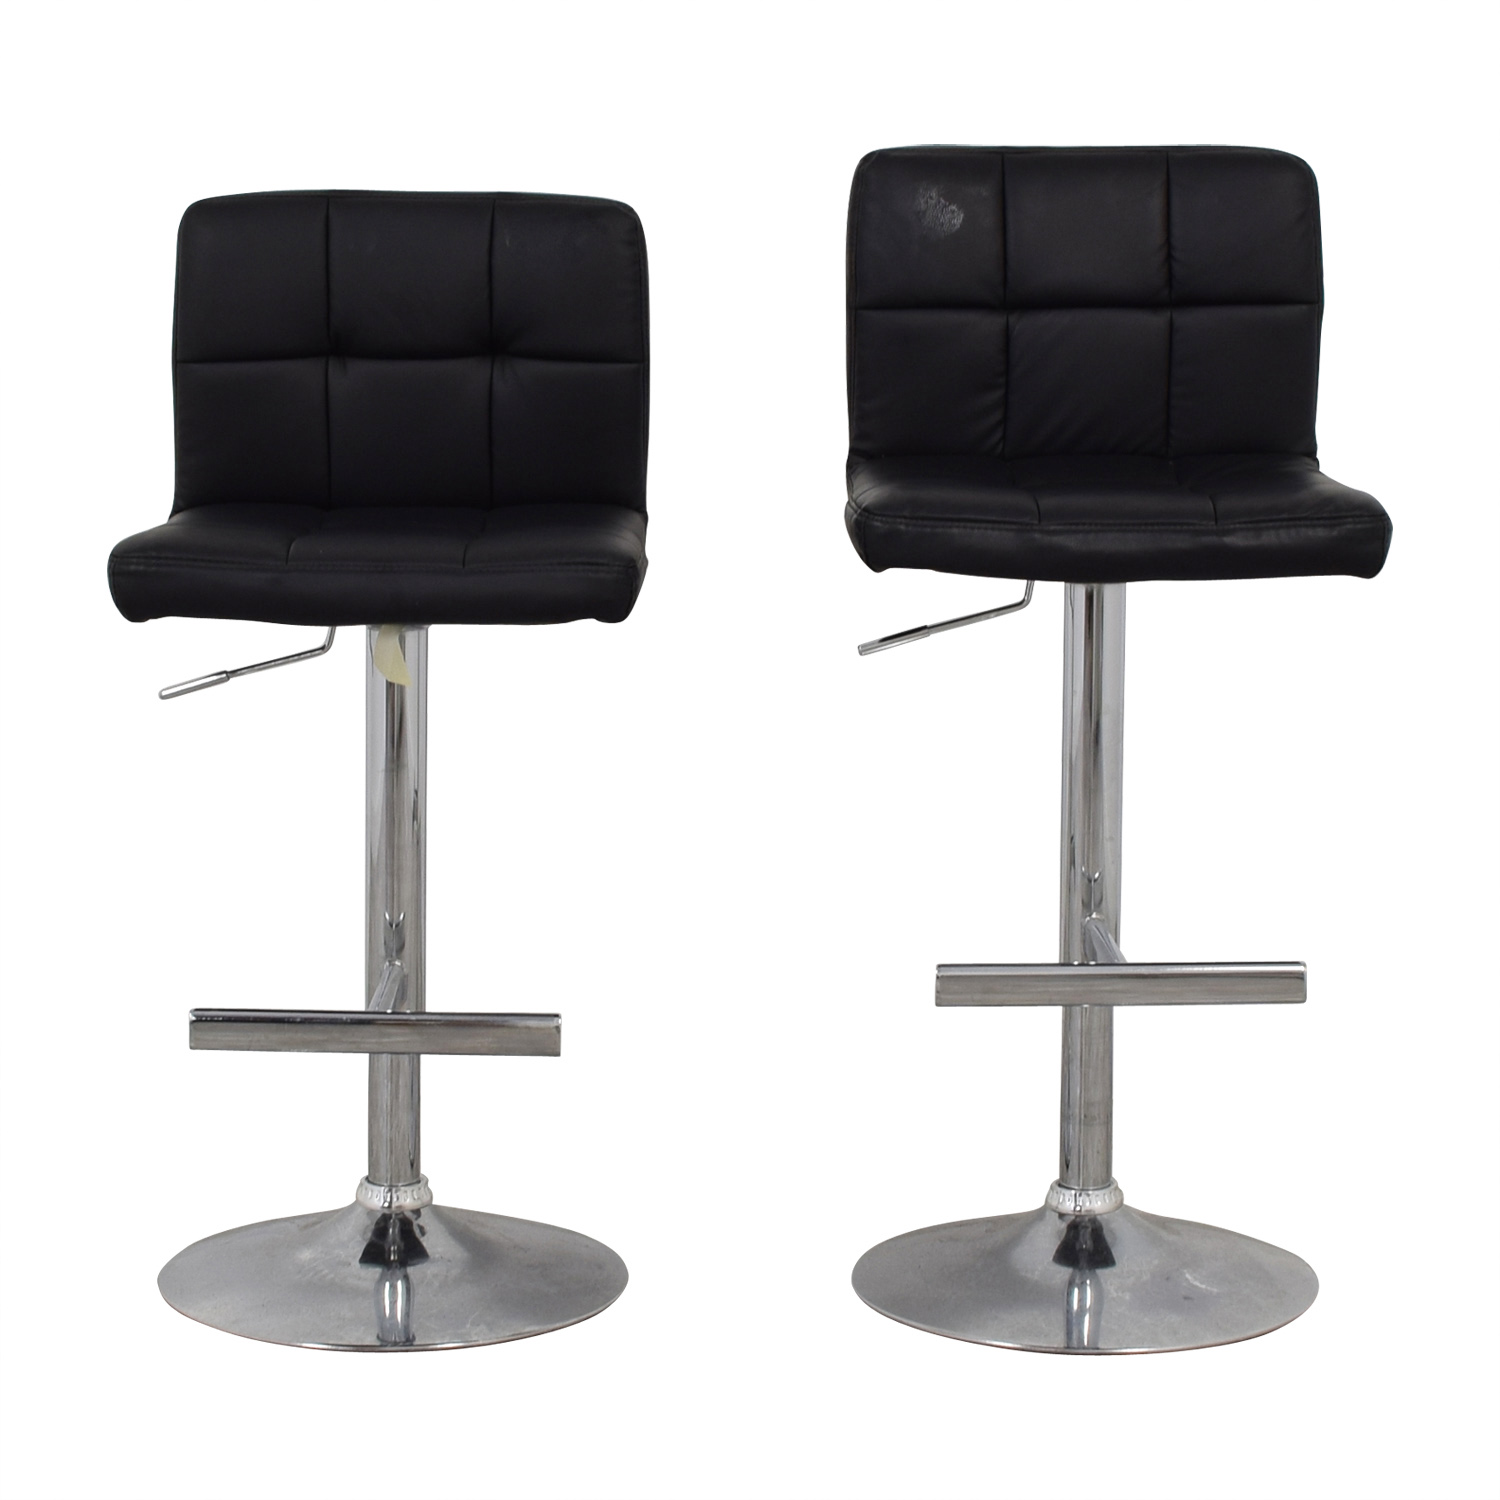 Coaster Coaster Black Semi-Tufted Adjustable Bar Stools dimensions